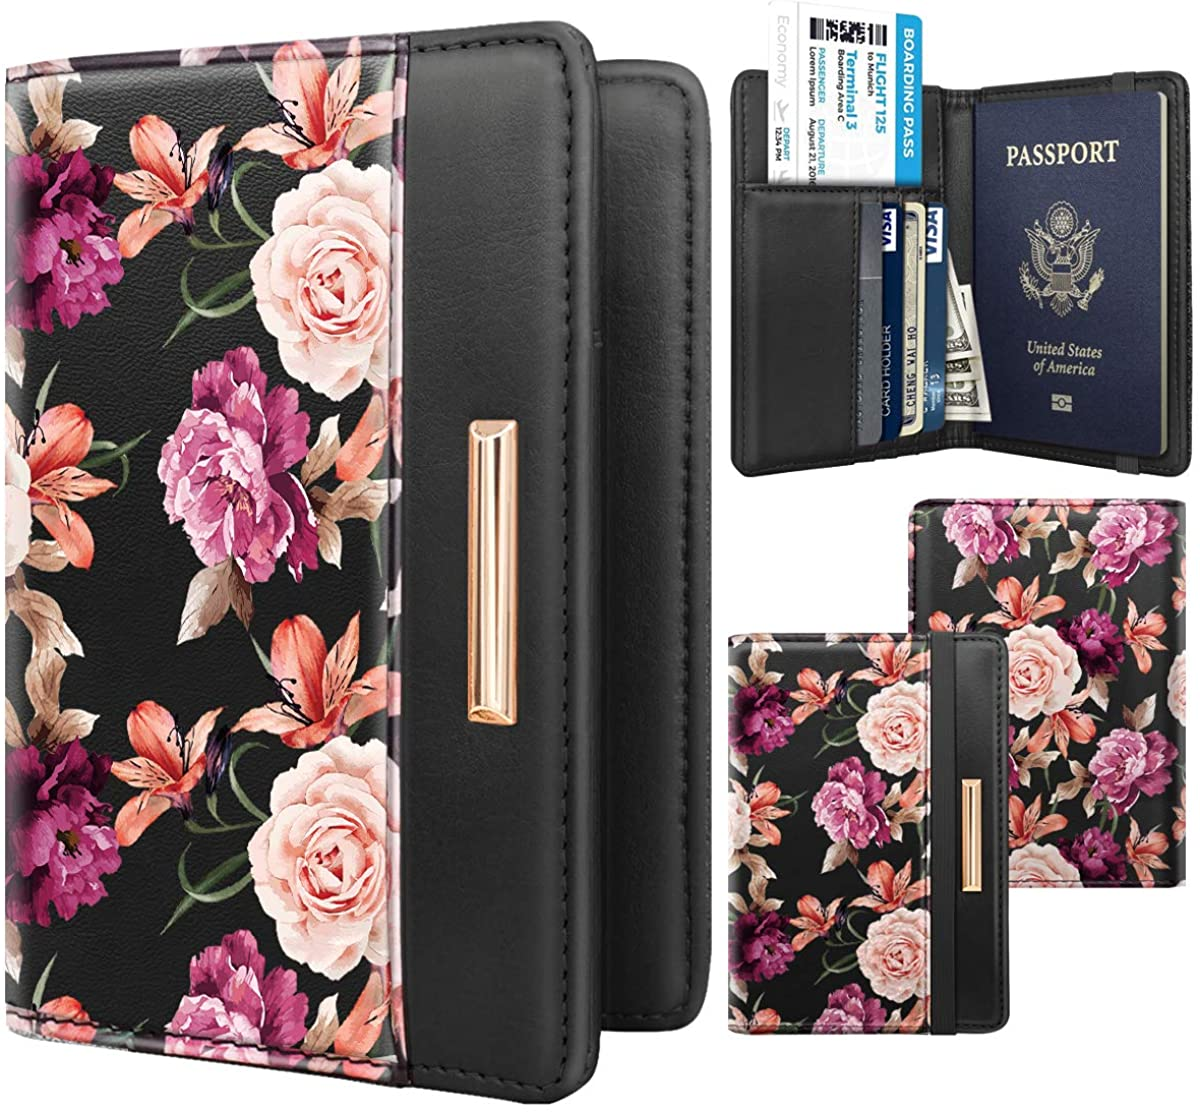 Leather Passport Cover Hosamtel Flower Pattern PU Leather ID Card Bag Passport Package Business Card Holder Travel Wallets Black